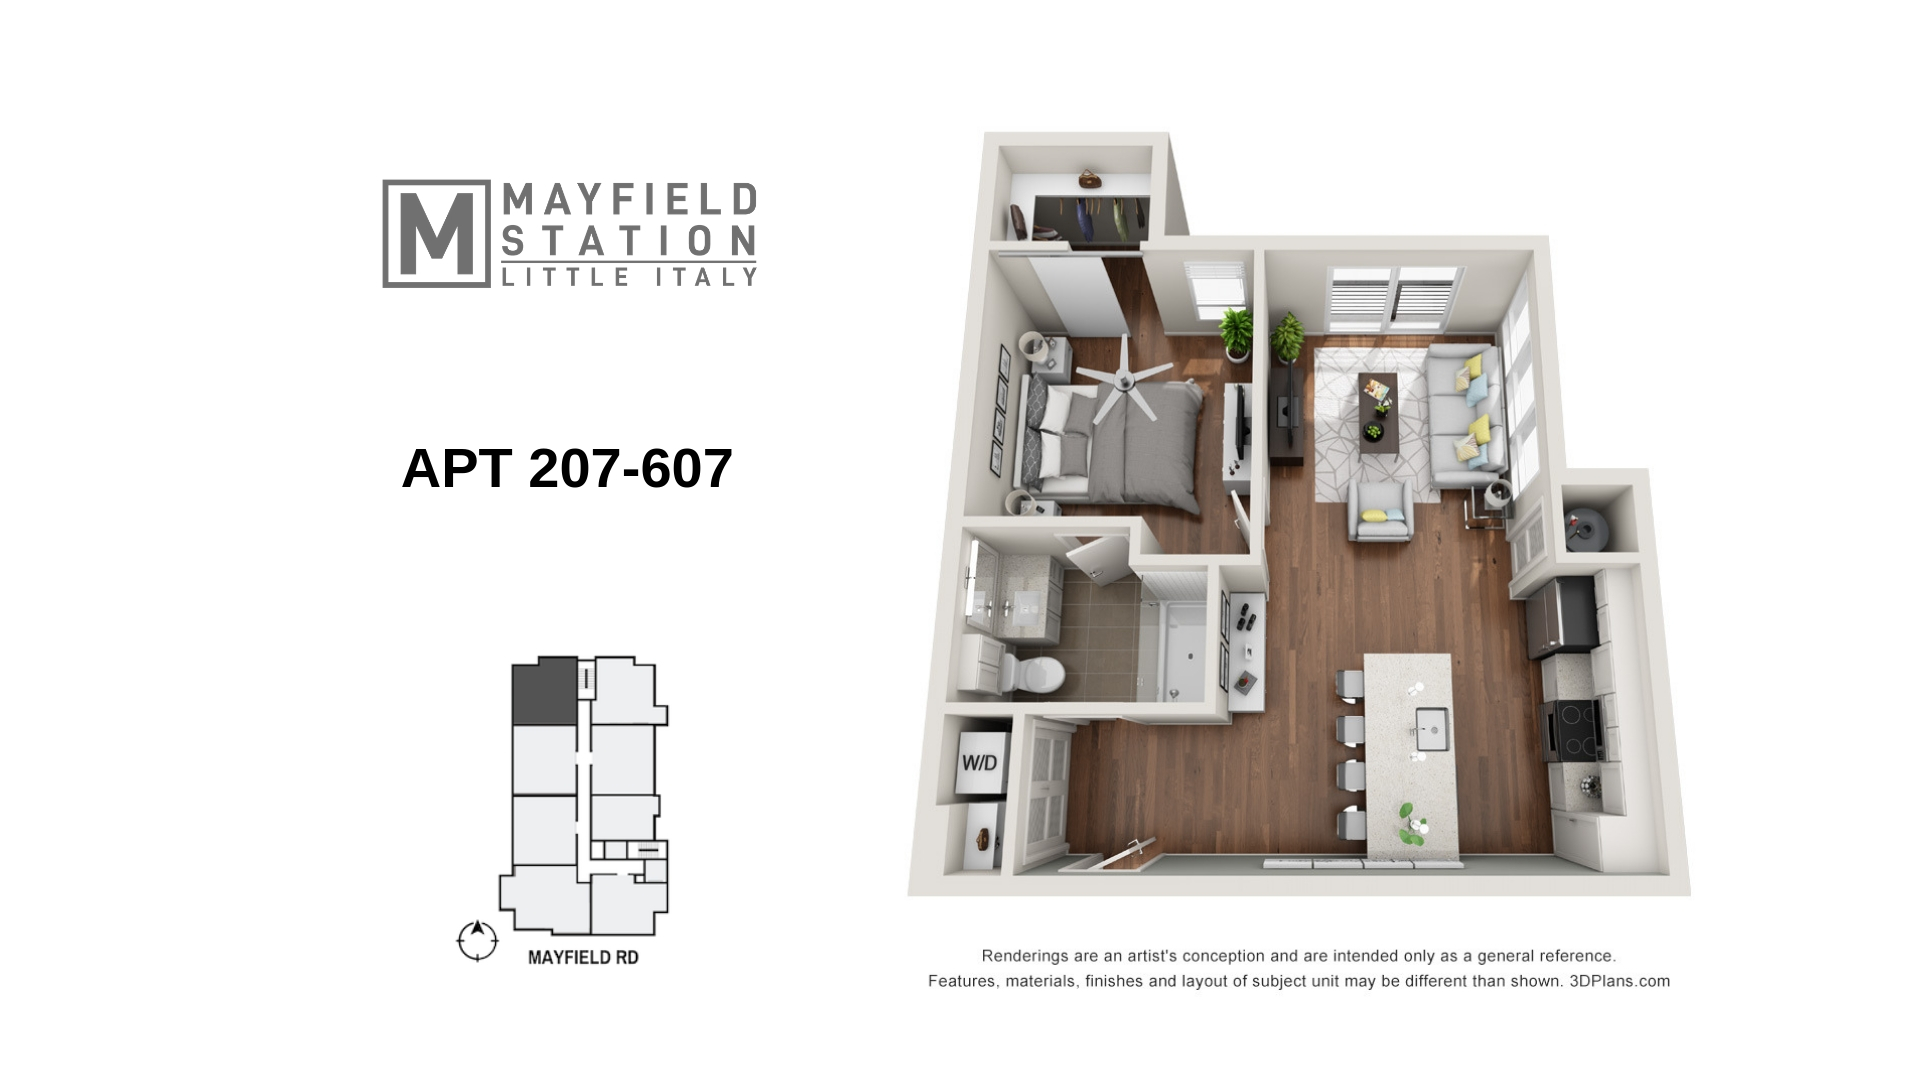 Mayfield Station Apartments - Floorplan - APT 207-607